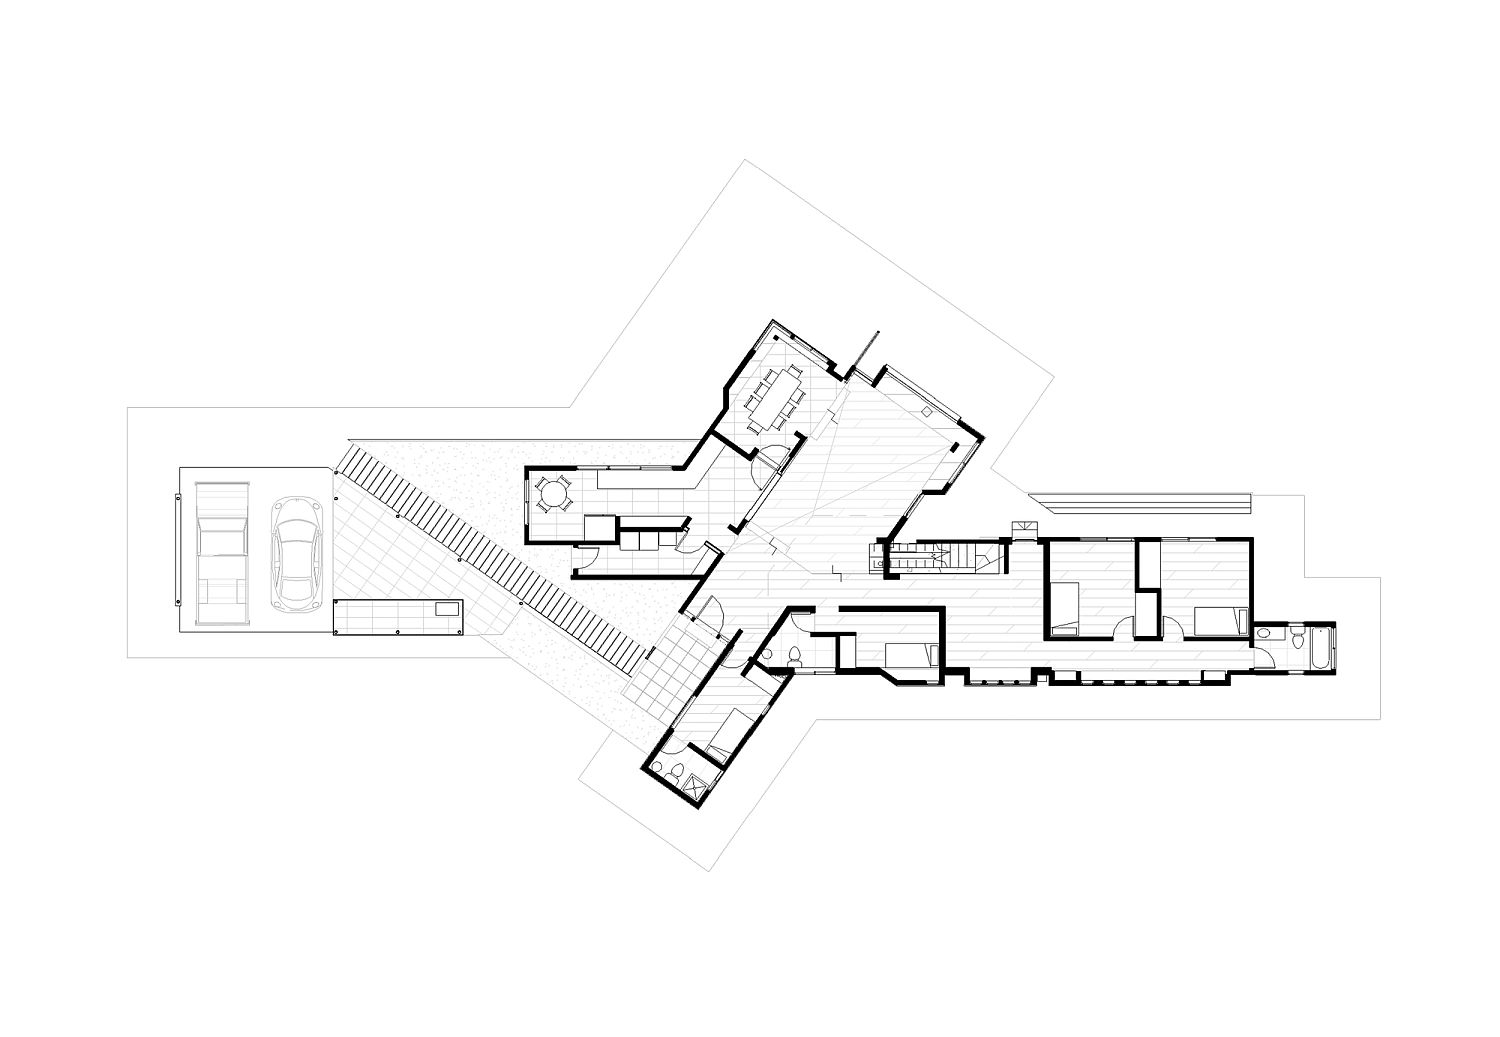 Ground floor plan of contemporary home in Chile